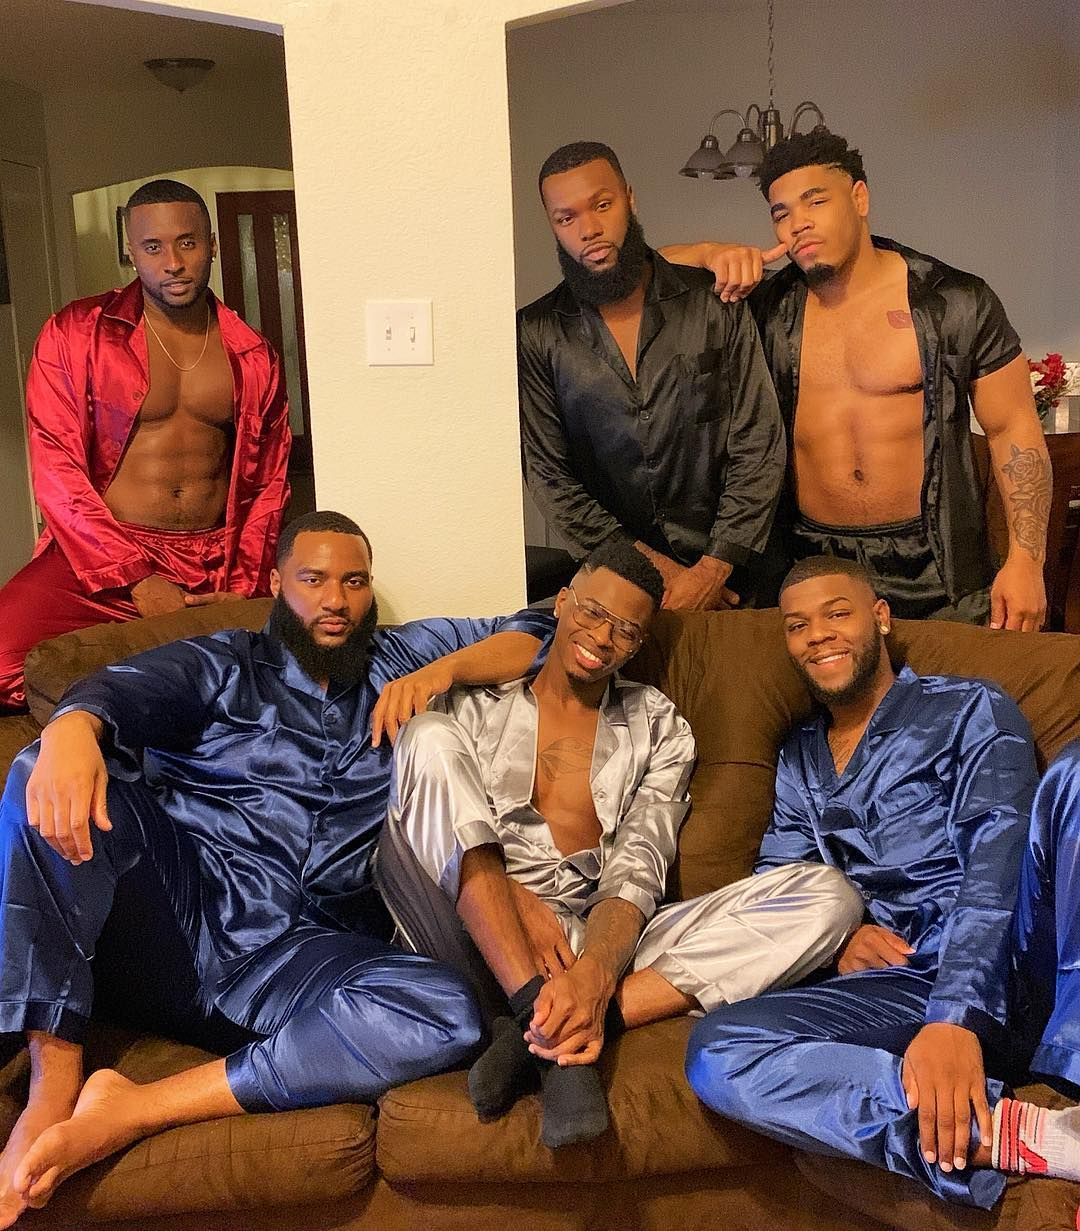 Gay men slumber party 4